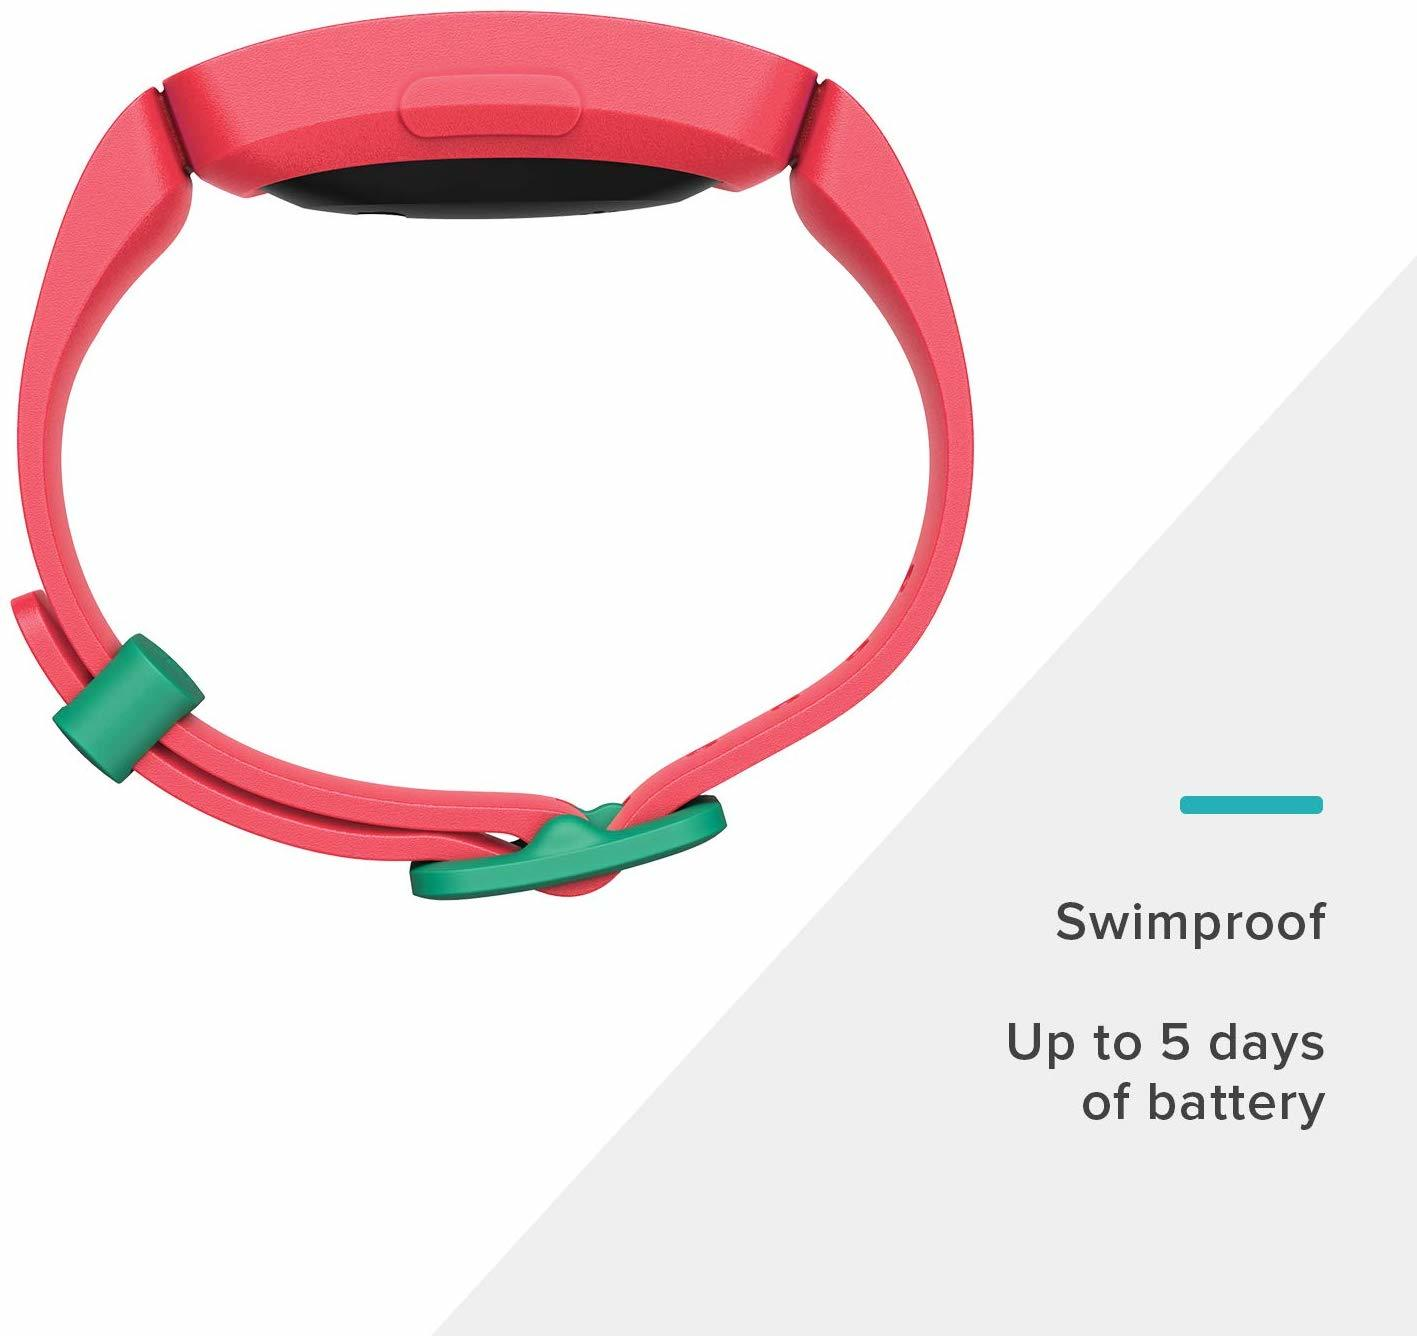 Fitbit Ace 2 Kid's Activity Tracker - Watermelon/Teal image